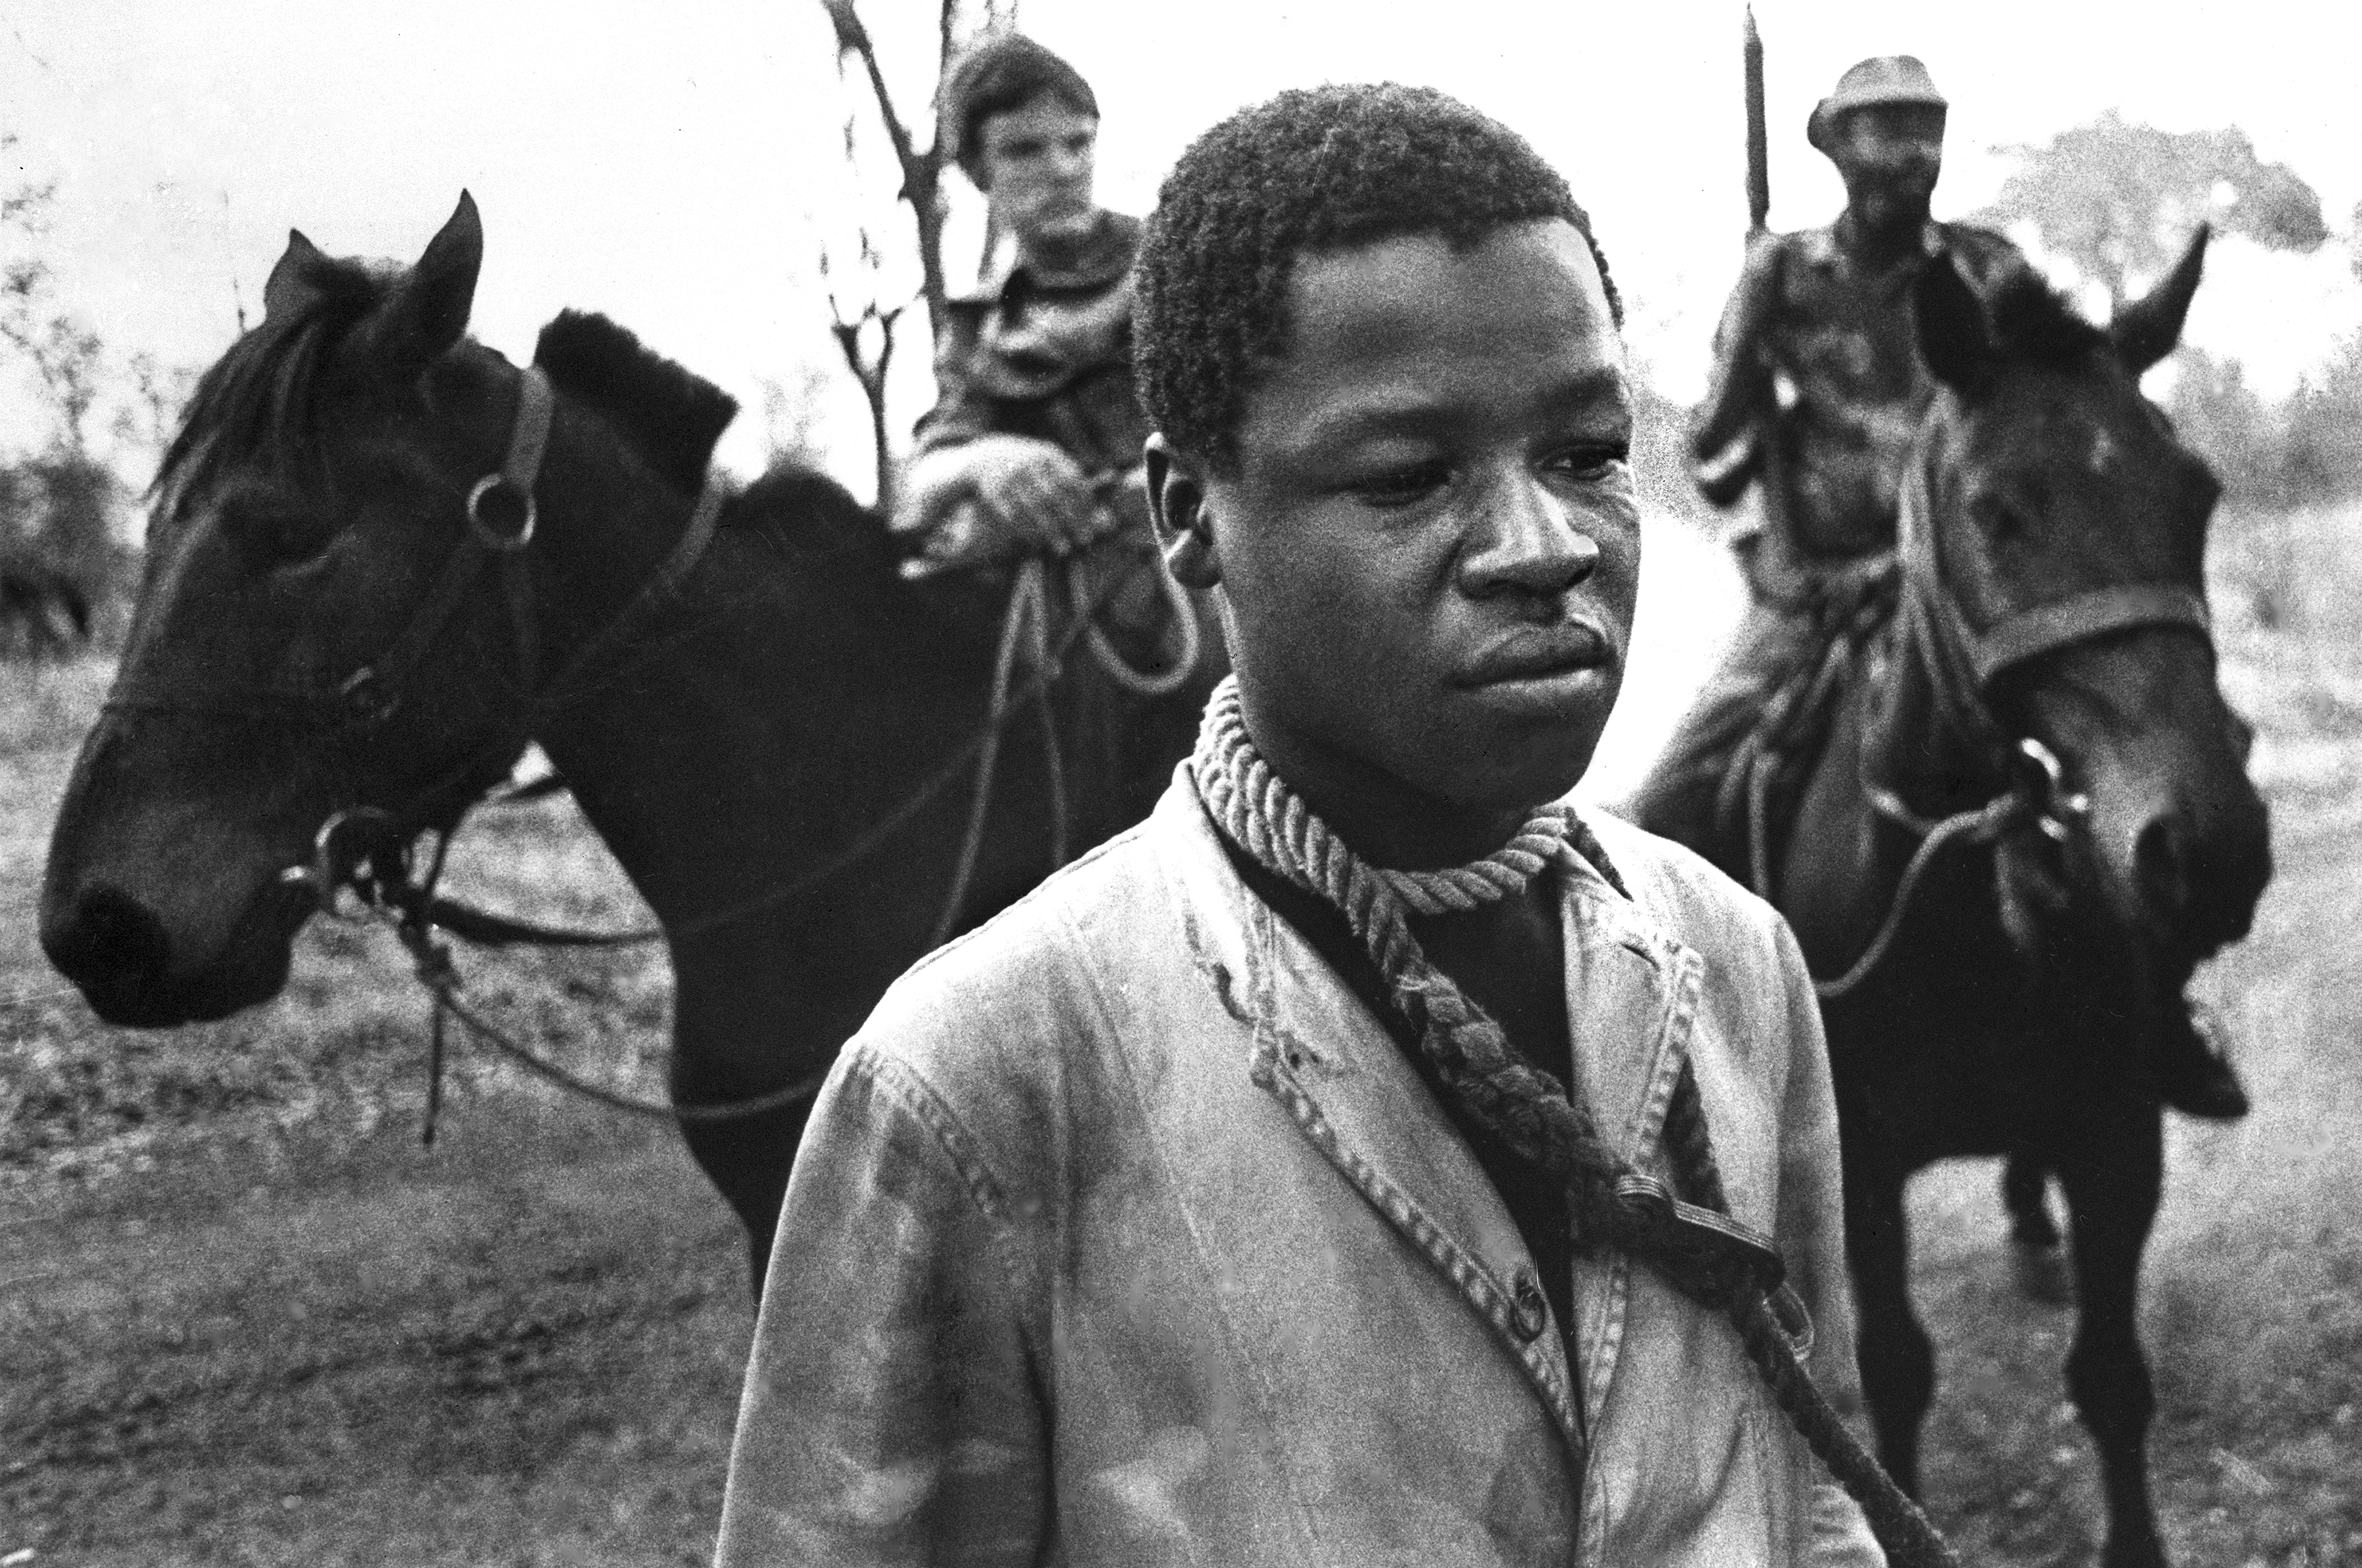 A Rhodesian prisoner stands with a rope tied around his neck to prevent escape, placed there by Rhodesian cavalrymen, background, who detained him for questioning in Lupane, southern Rhodesia, in September 1977. Rhodesia's white-dominated government was countering black guerrilla activities with militant armed forces. (AP Photo/J. Ross Baughman)